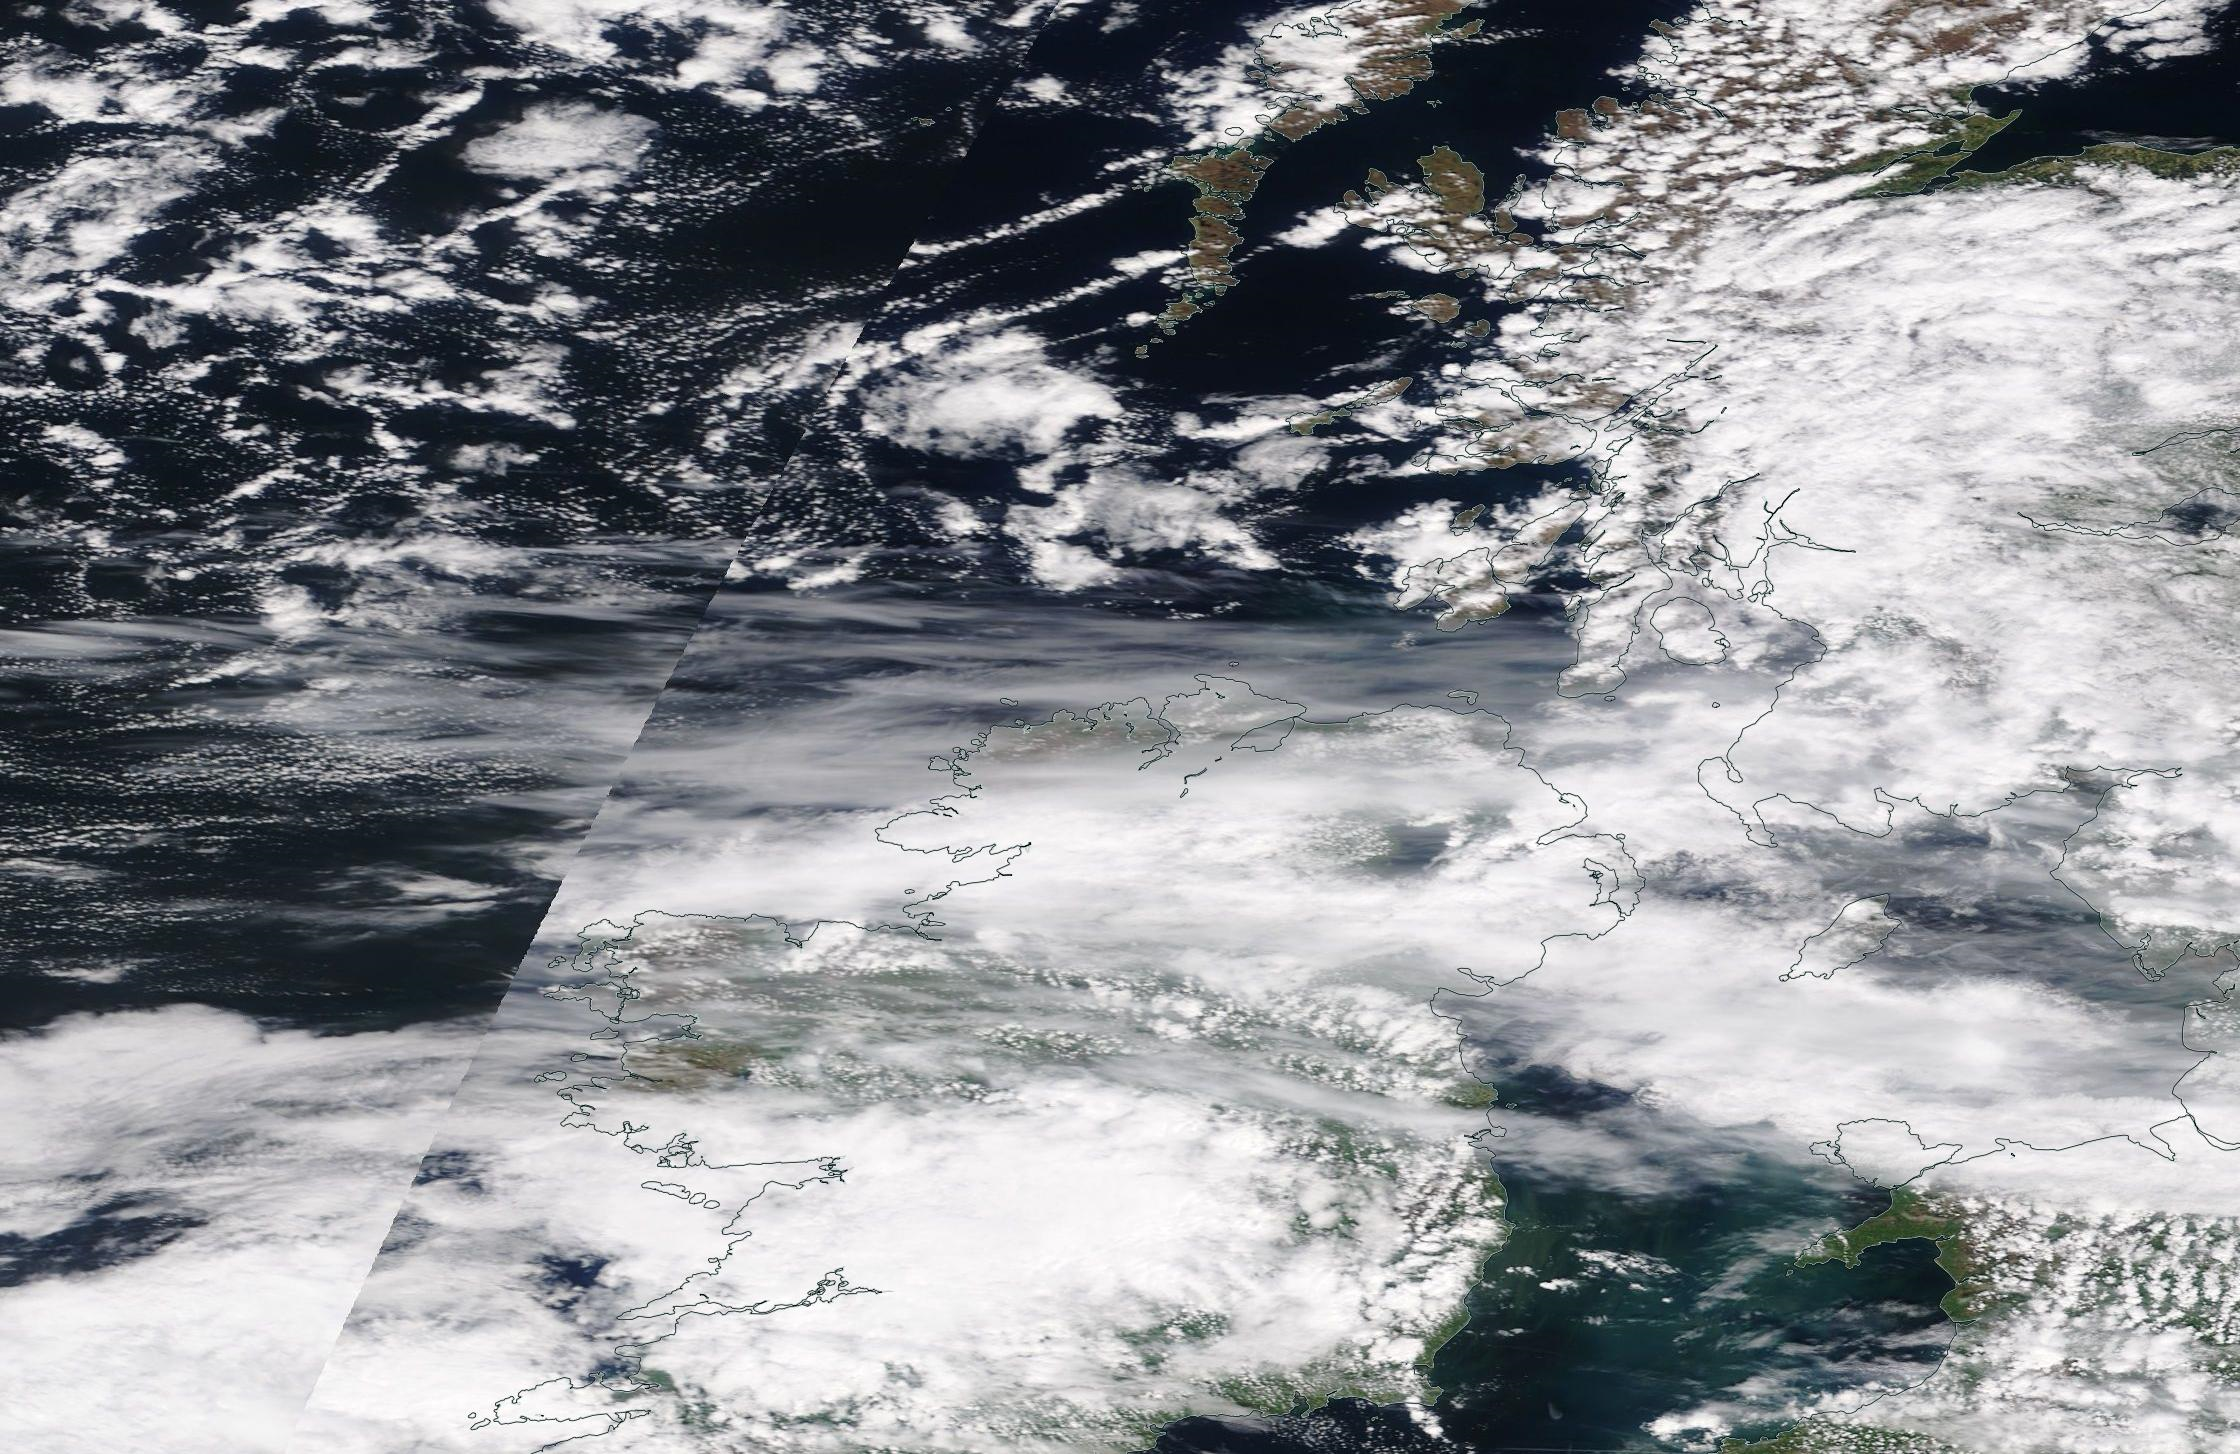 chemtrails Irish Sea, Northern Ireland and across England 7 May 2019 ... https://go.nasa.gov/2DTVUo0